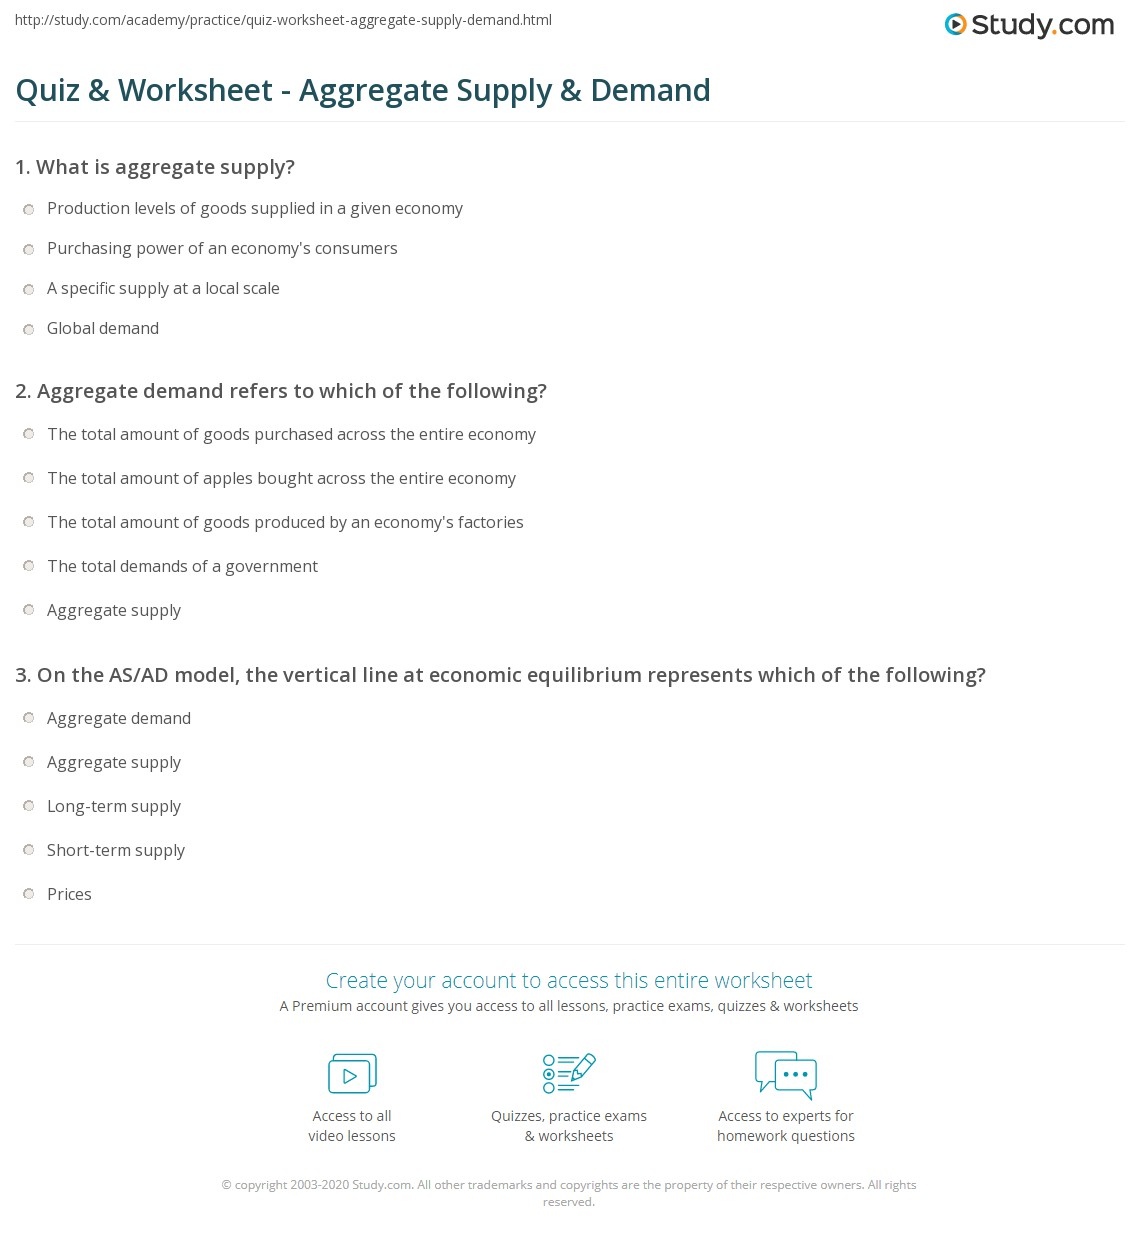 Quiz & Worksheet - Aggregate Supply & Demand | Study.com